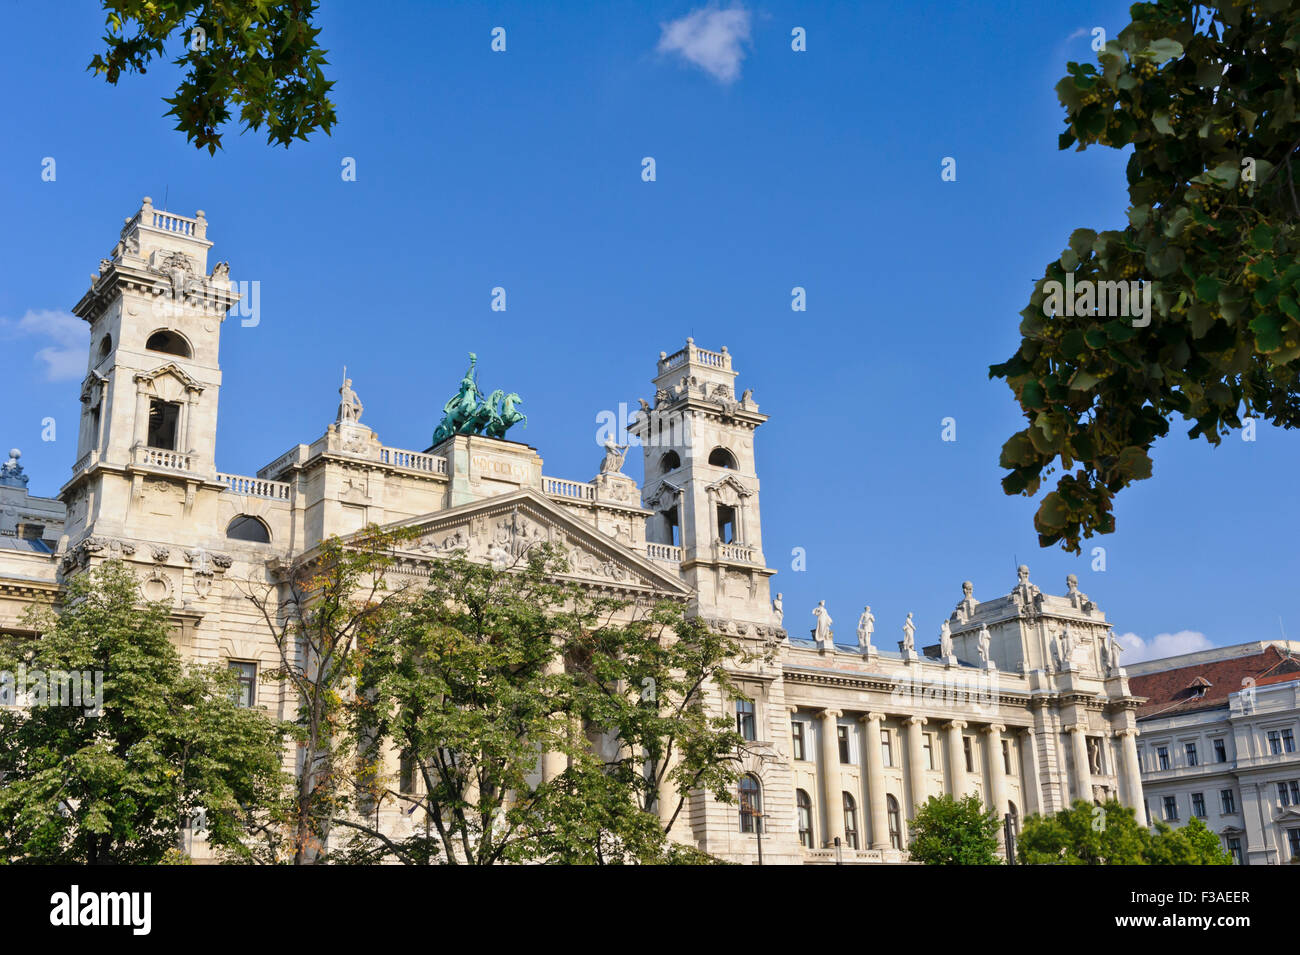 The Ethnography Museum building opposite the Hungarian Parliament, Budapest, Hungary. - Stock Image